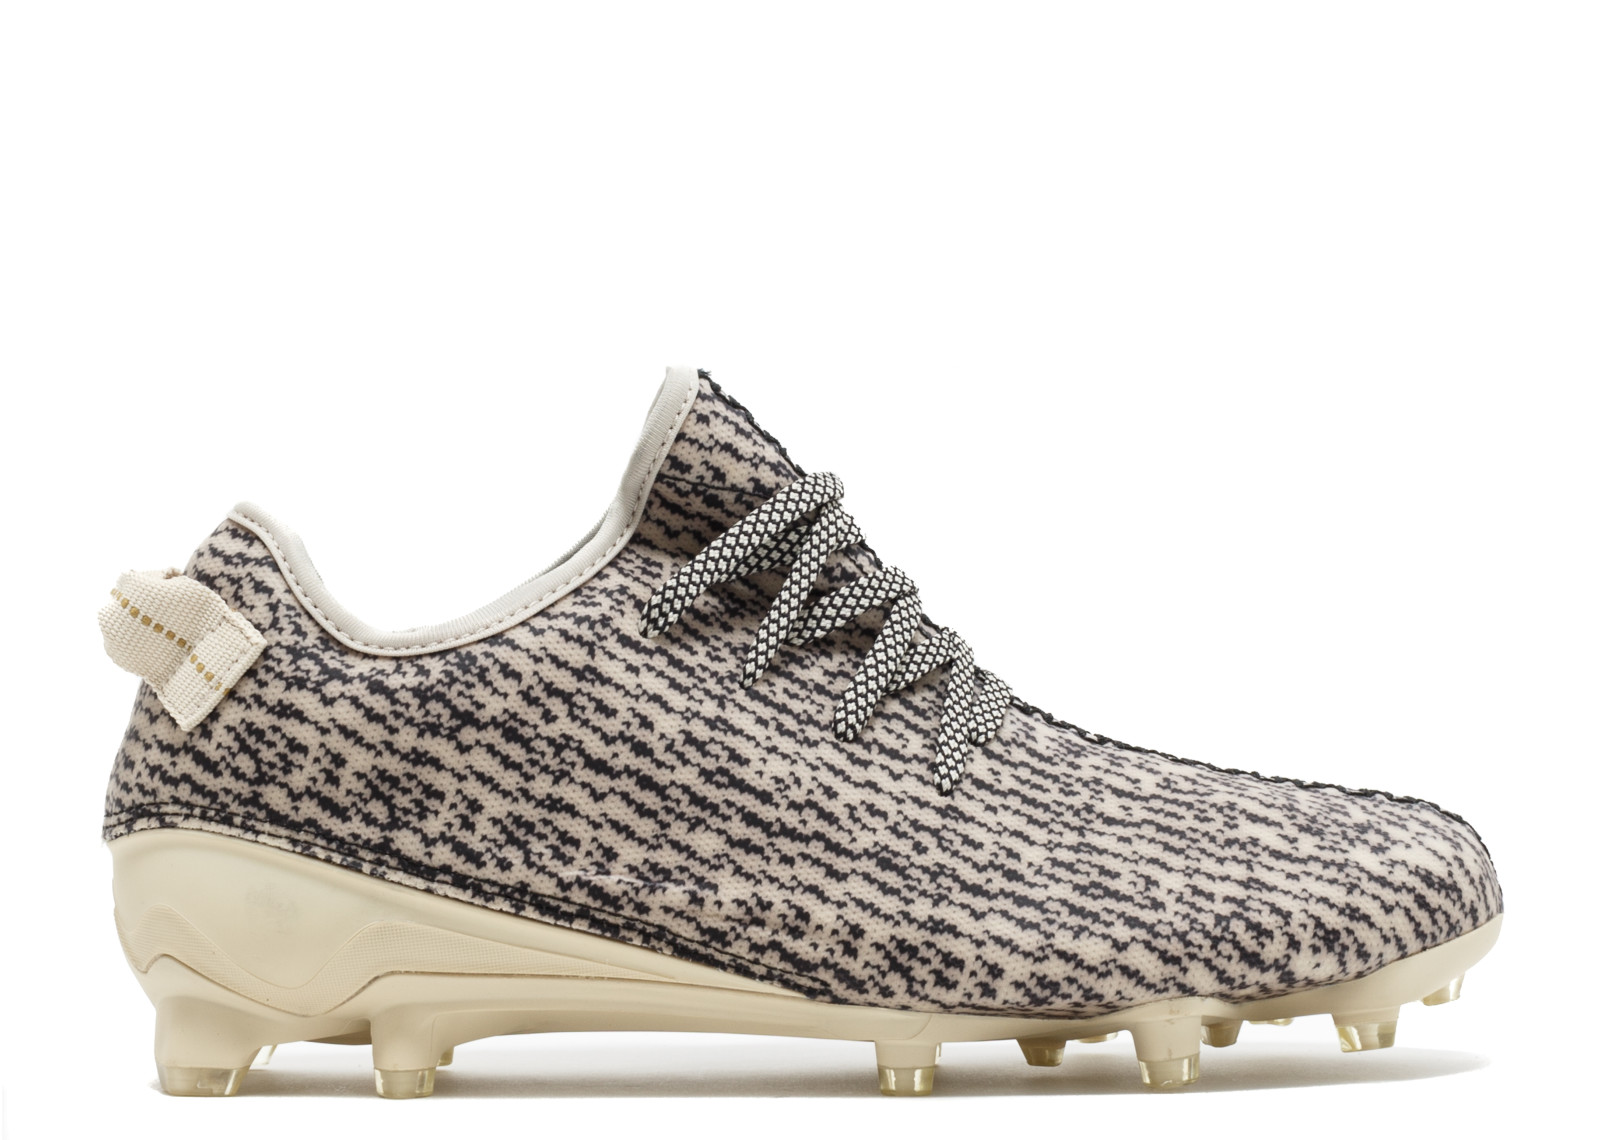 63530d3e61fa7 adidas Yeezy 350 Cleat Turtledove